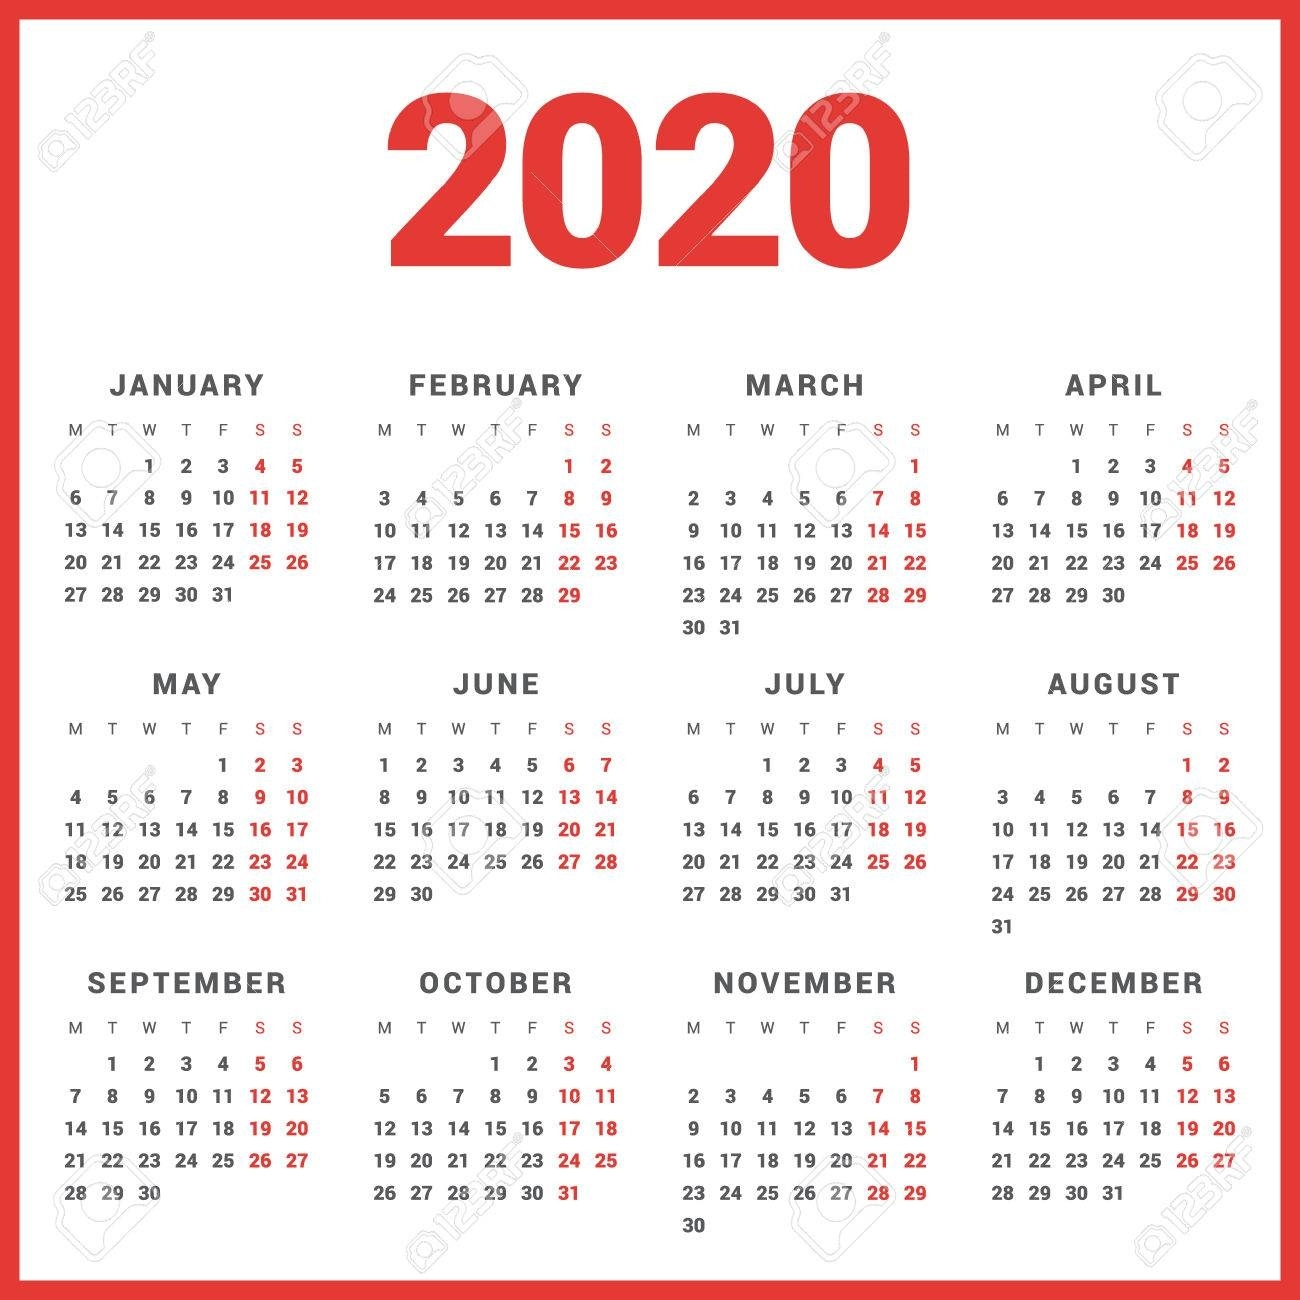 Calendar For 2020 Year On White Background. Week Starts Monday intended for Free Calendars 2020 Start With Monday